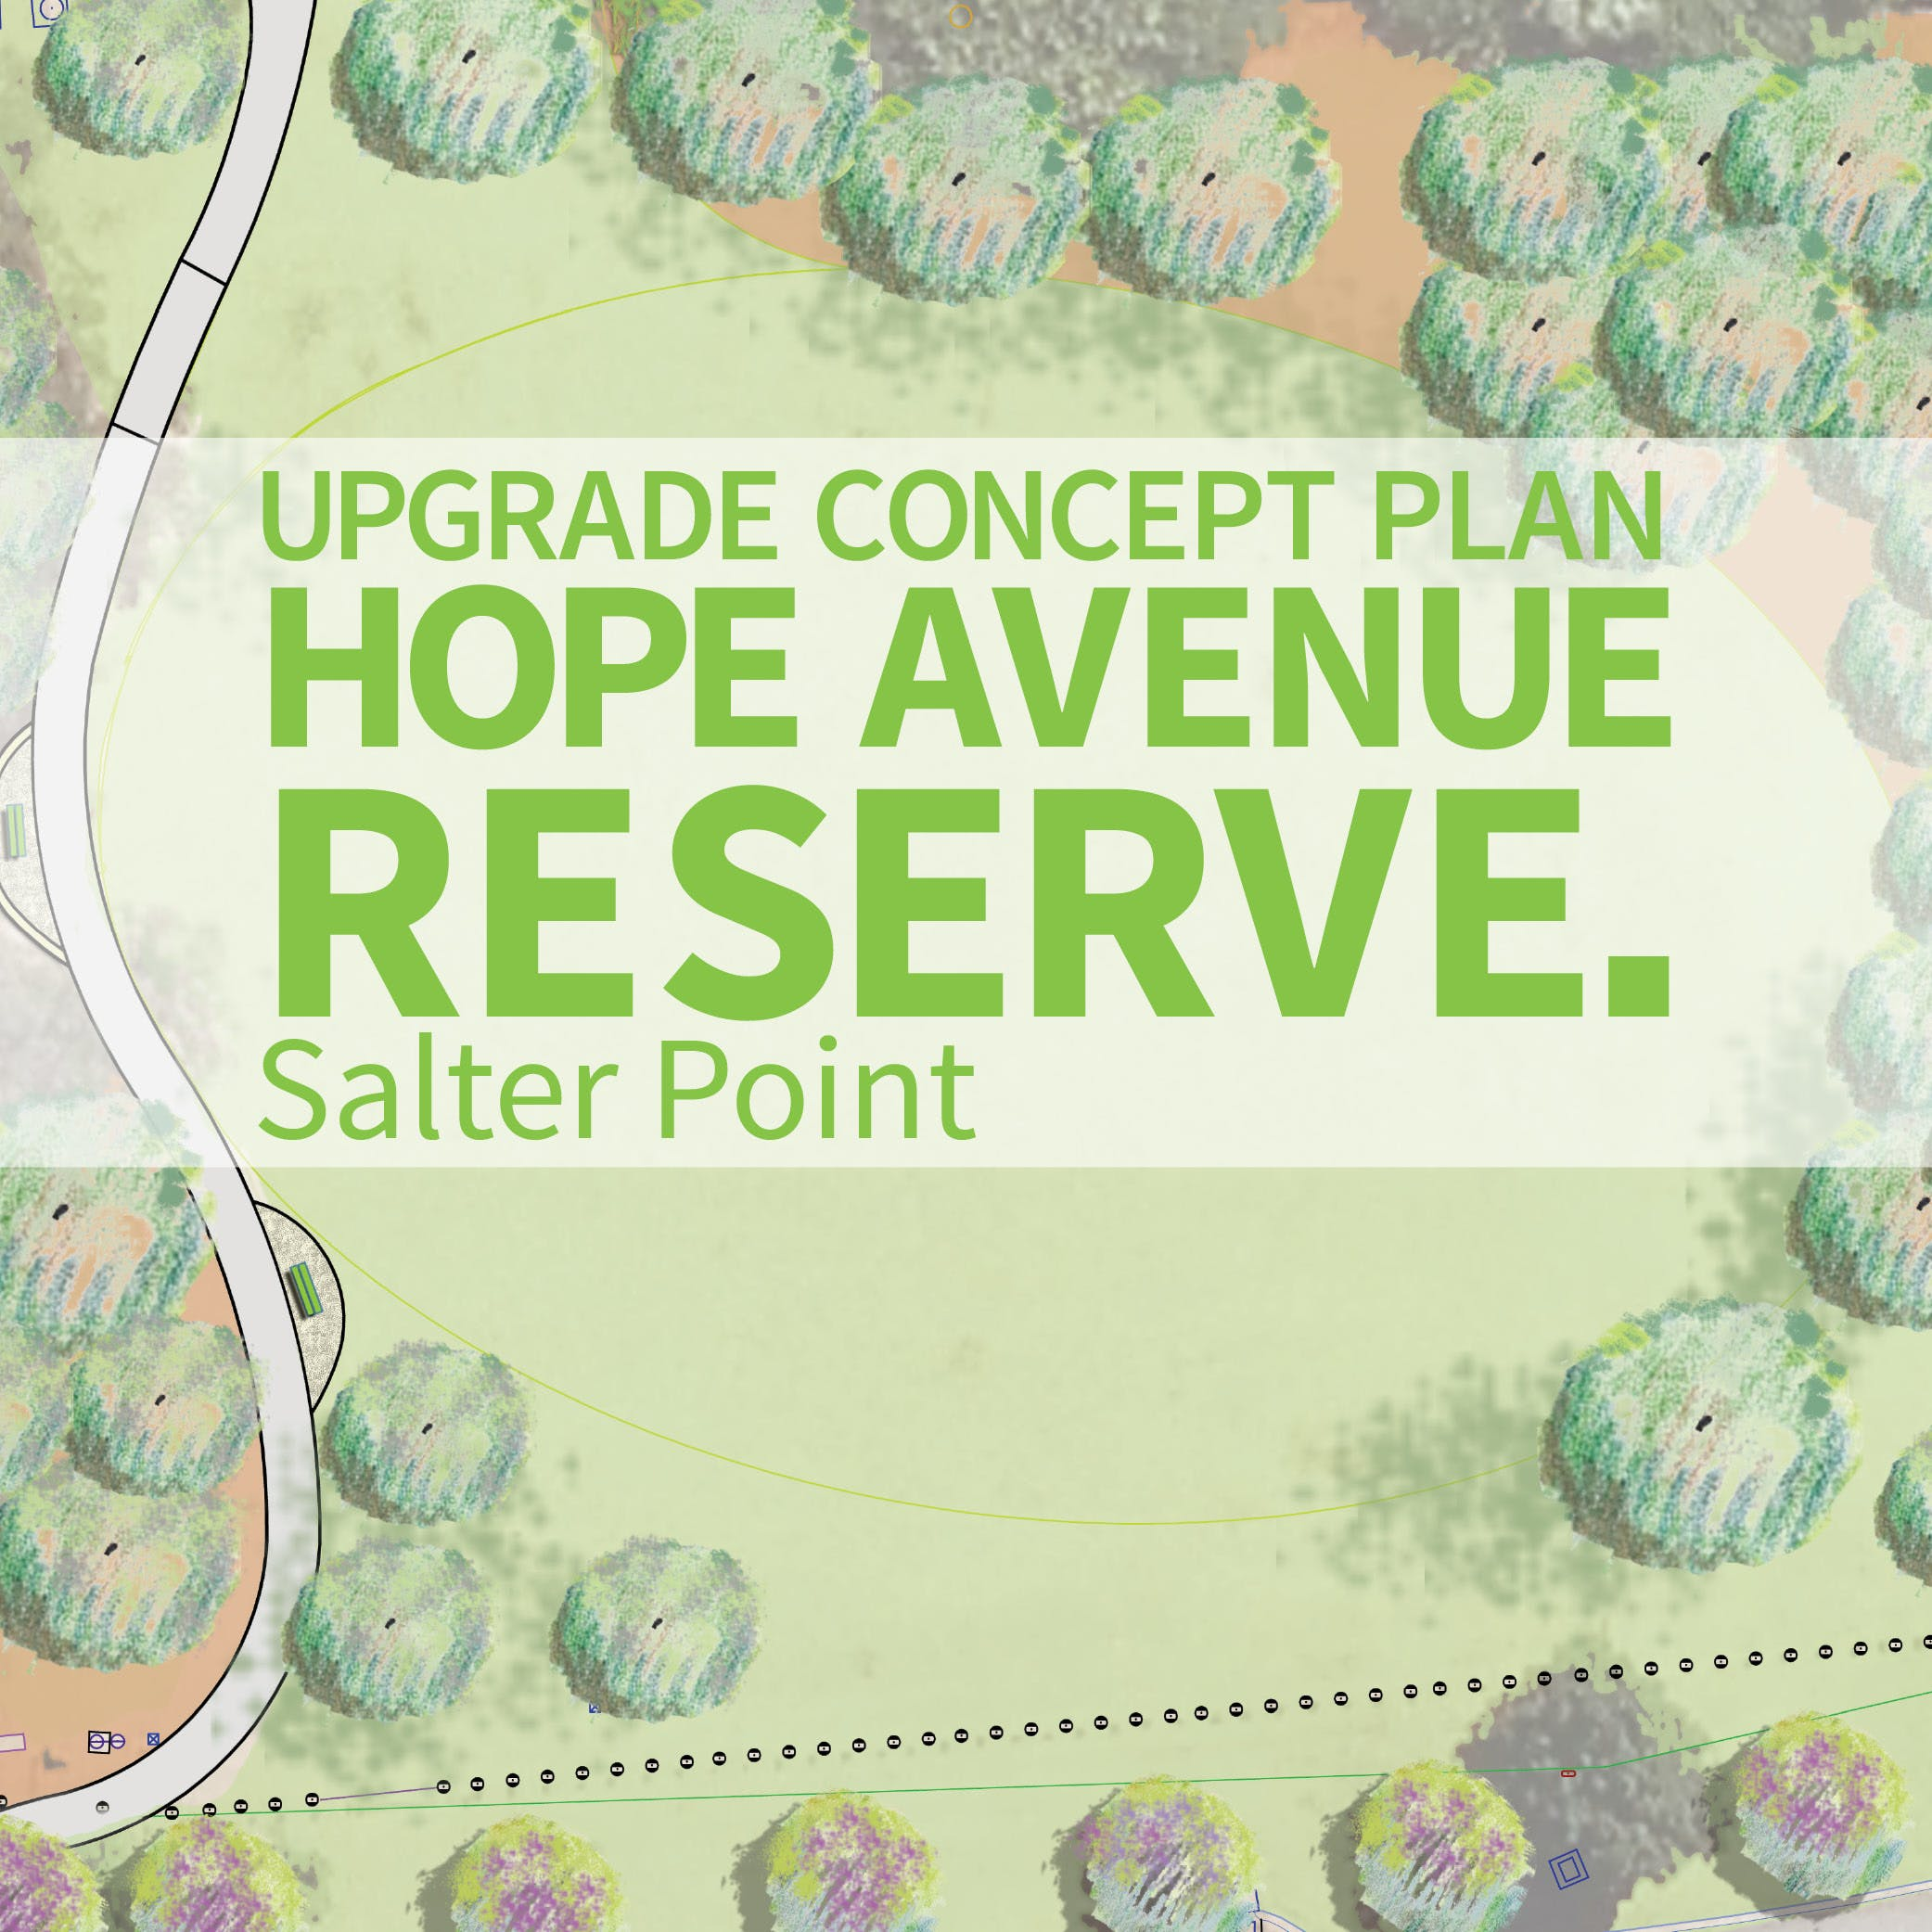 Hope Ave Reserve upgrade